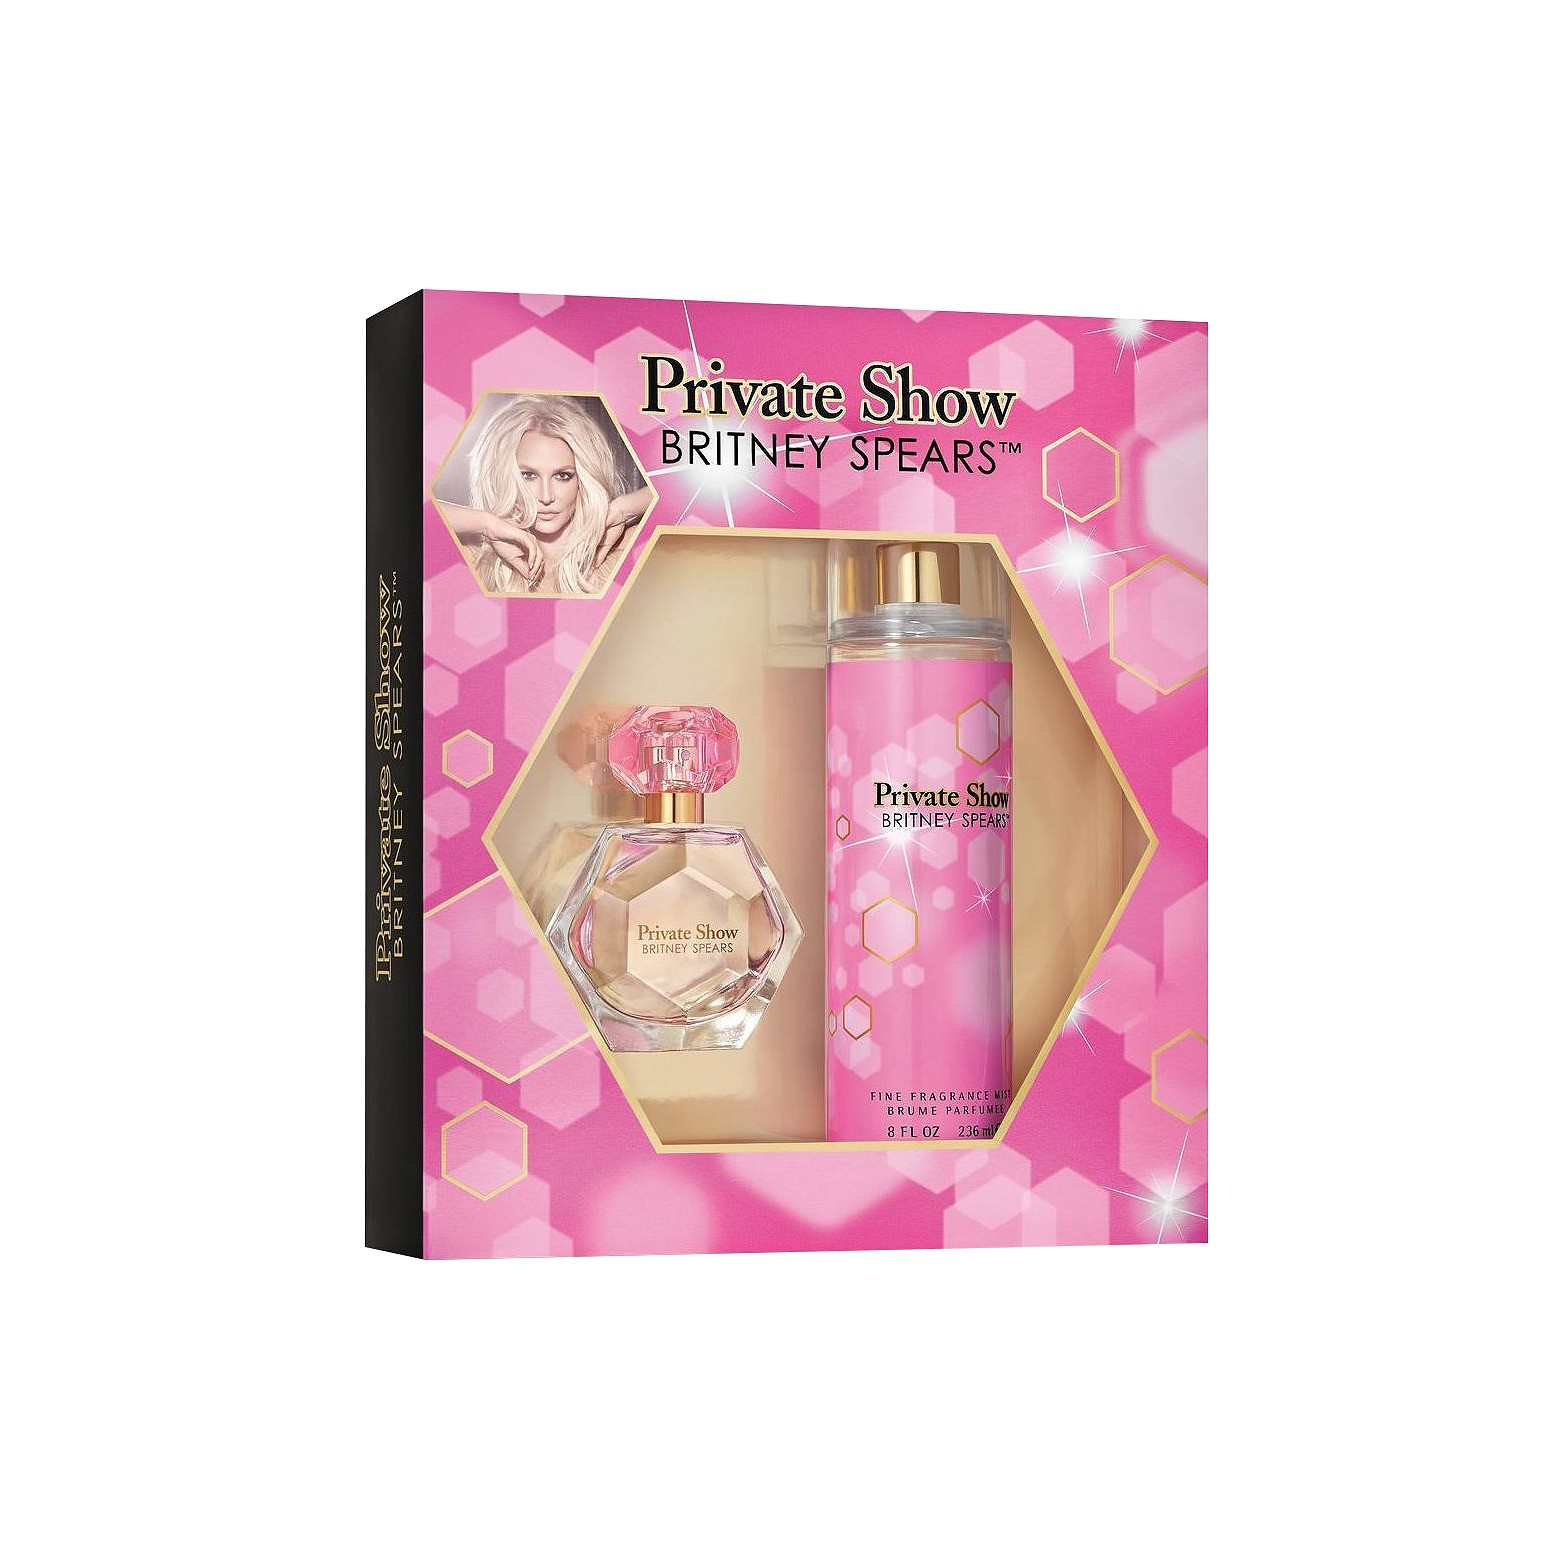 Private Show by Britney Spears Women's Fragrance Gift Set - 2 Pieces  $21.99 at Target.com